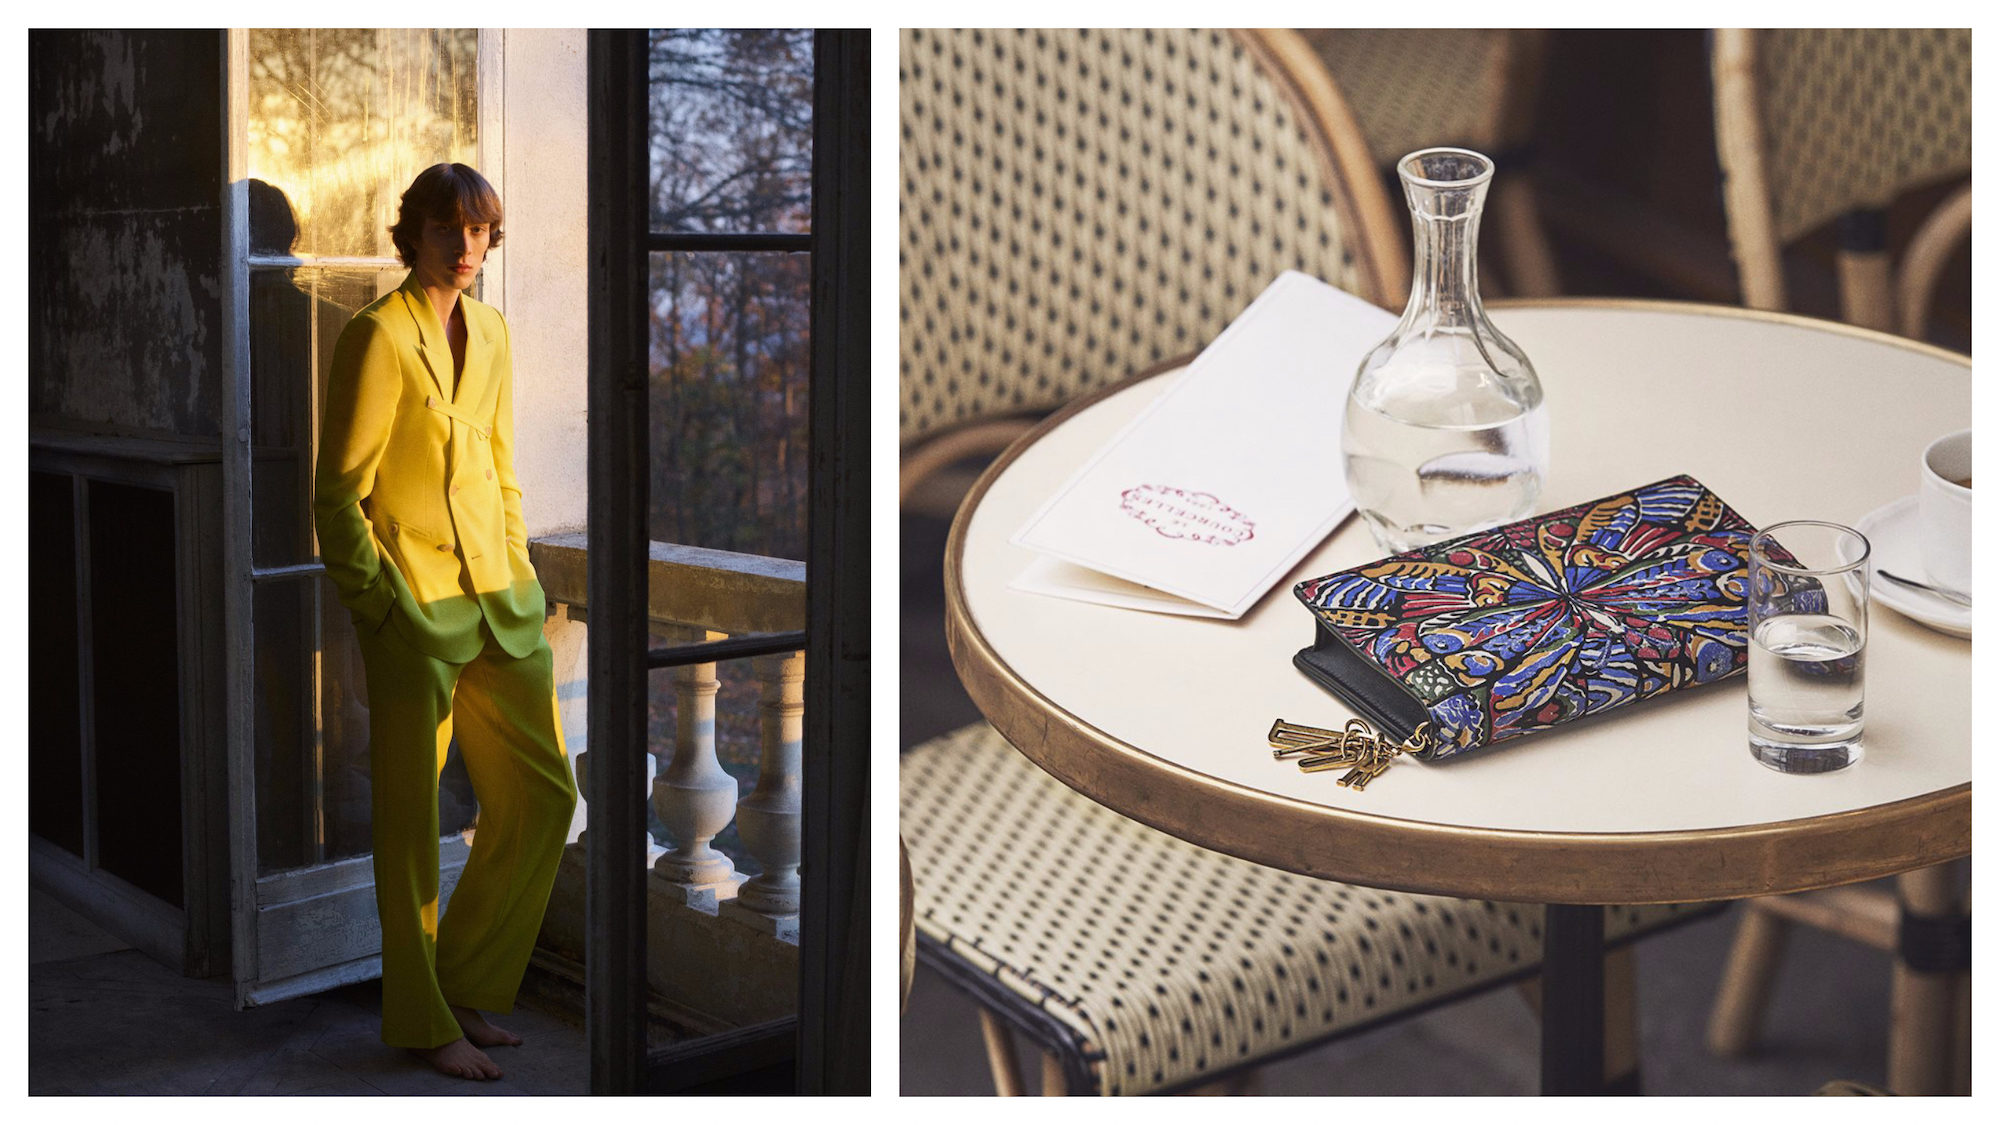 Paris shopping tips for where to buy the right suit like this yellow Dior number (left) and multi-colored clutch bag on a bistro table (right).